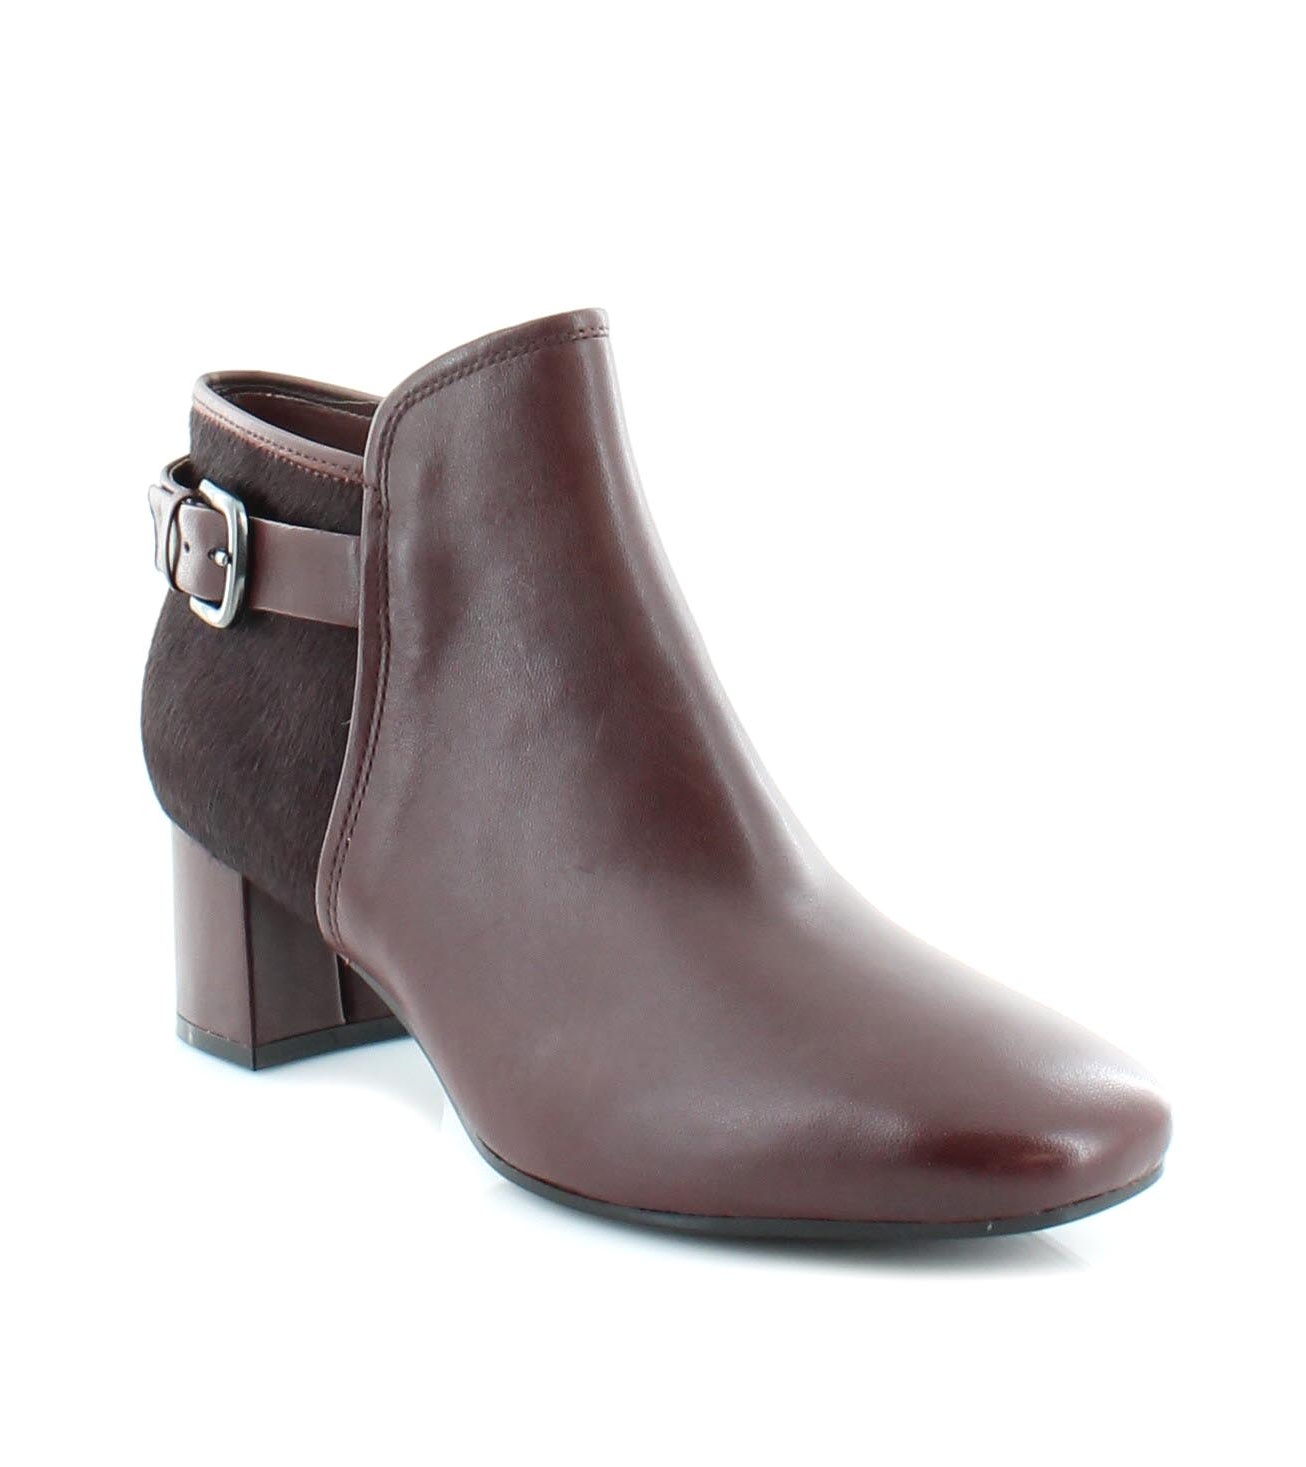 Naturalizer Nailah Women's Boots Economical, stylish, and eye-catching shoes